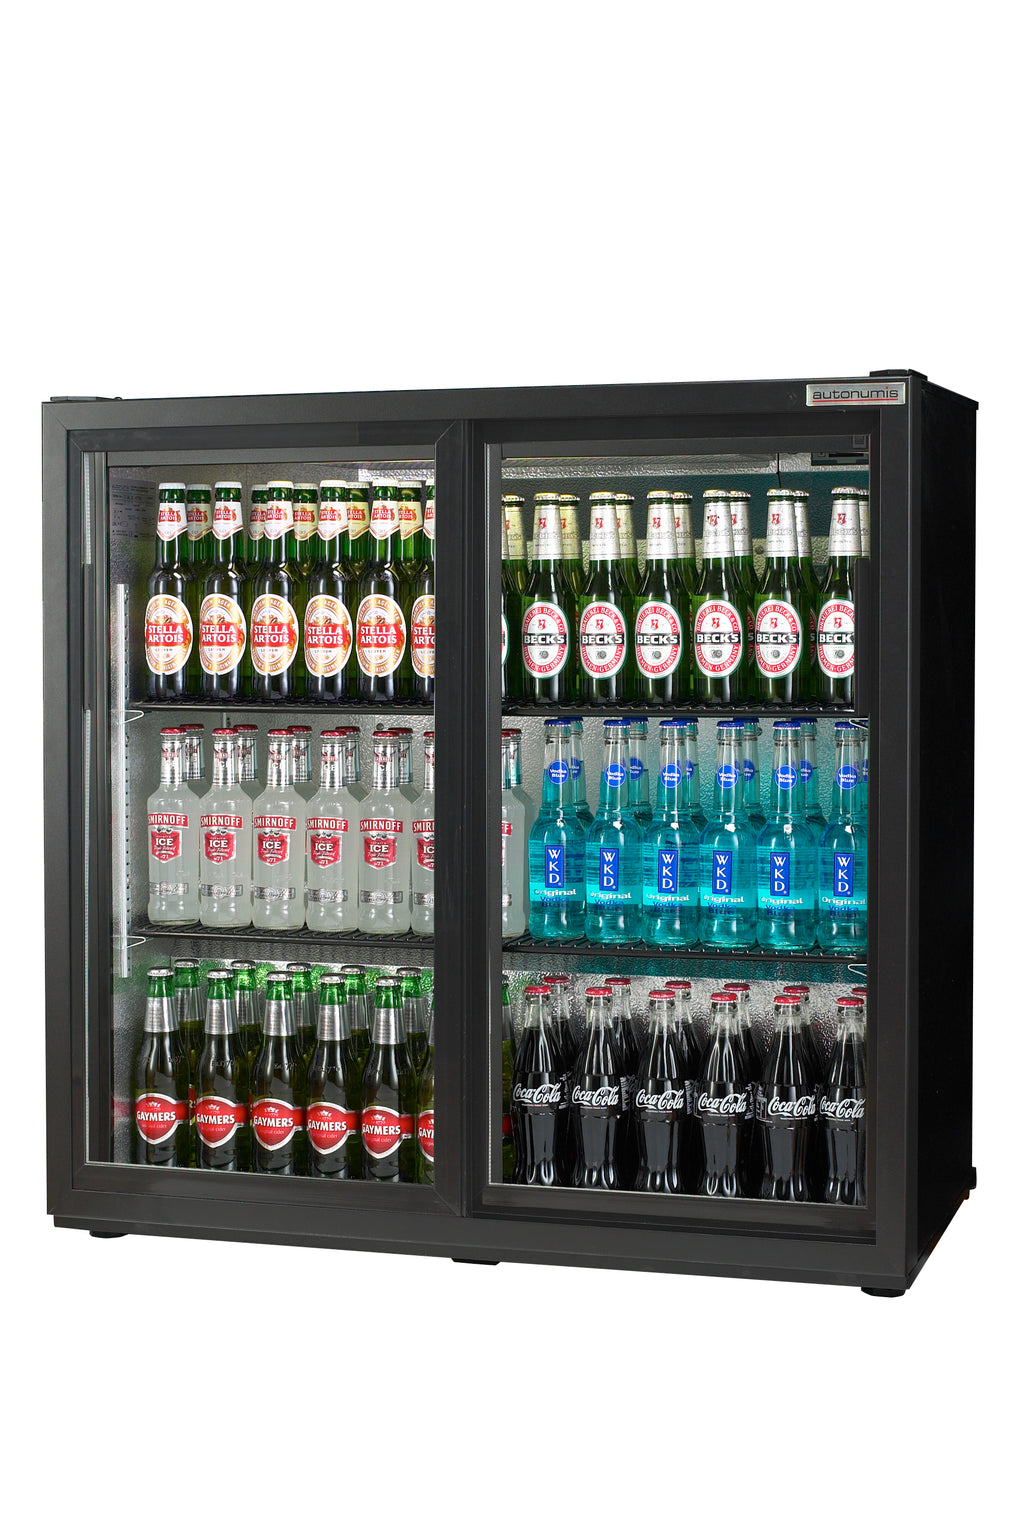 Autonumis Two Sliding Door Maxi Bottle Cooler Fridge Black : RHC10001